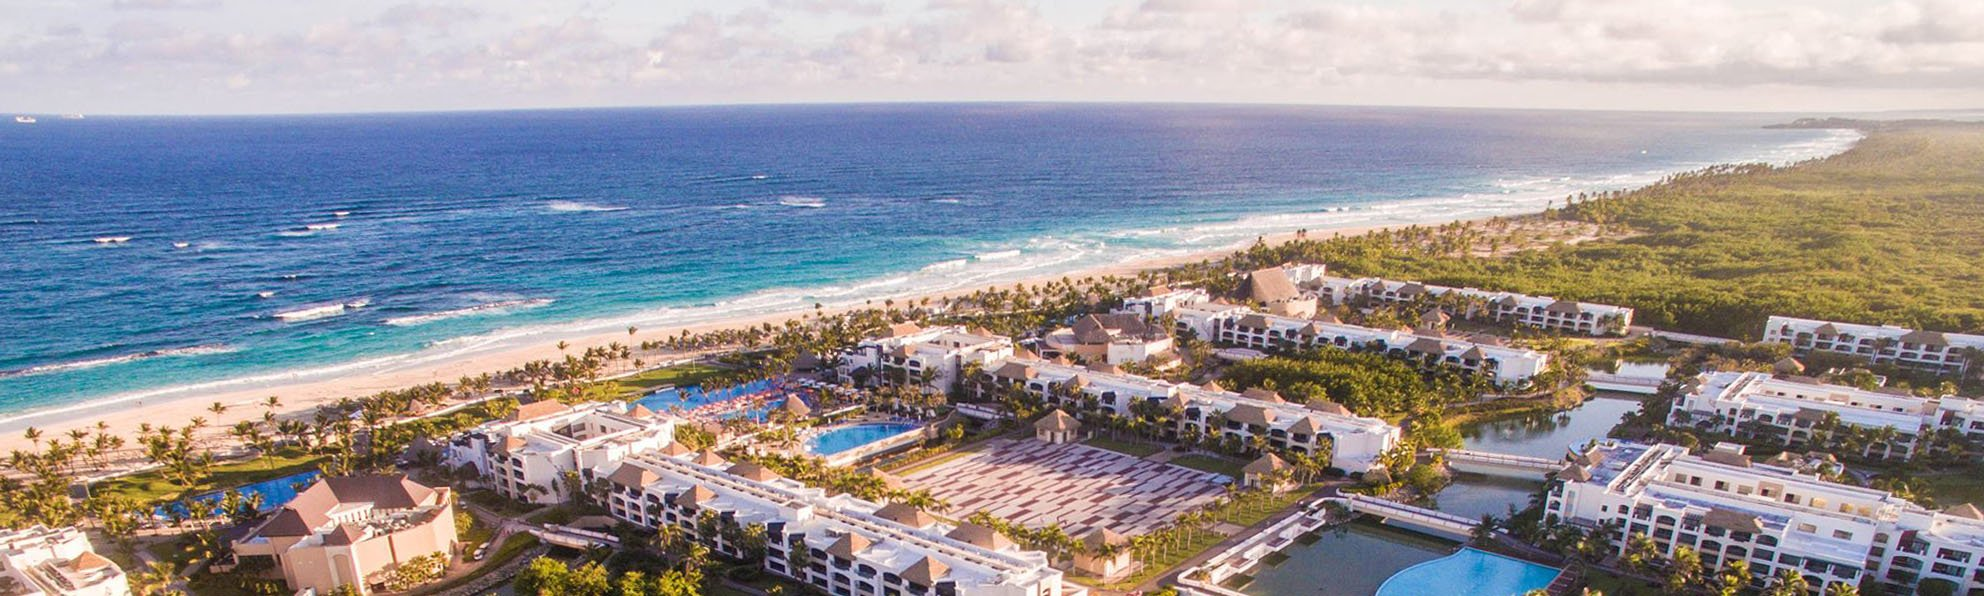 Punta Cana Spring Break Packages 2019 Go Blue Tours